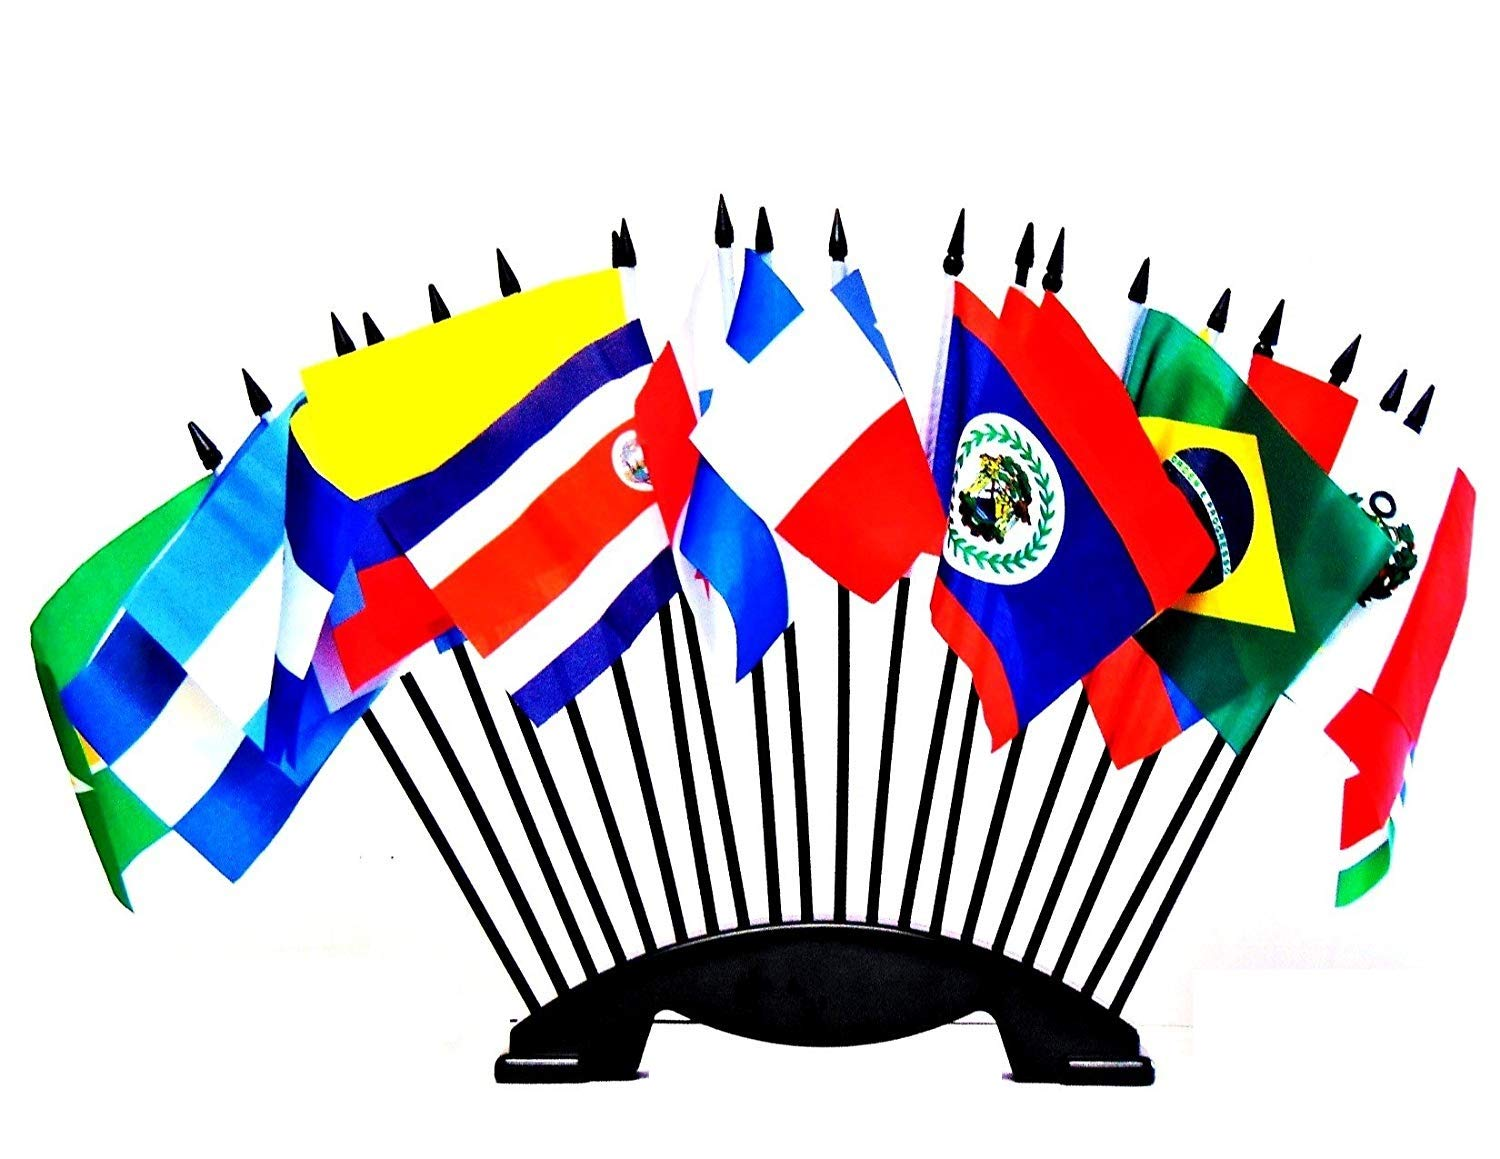 Central and South America World Flag Set with BASE-20 Polyester 4''x6'' Flags, One Flag for Each Country in Latin America Flag Centerpiece, 4x6 Miniature Desk & Table Flags, Small Mini Stick Flags by World Flags Direct